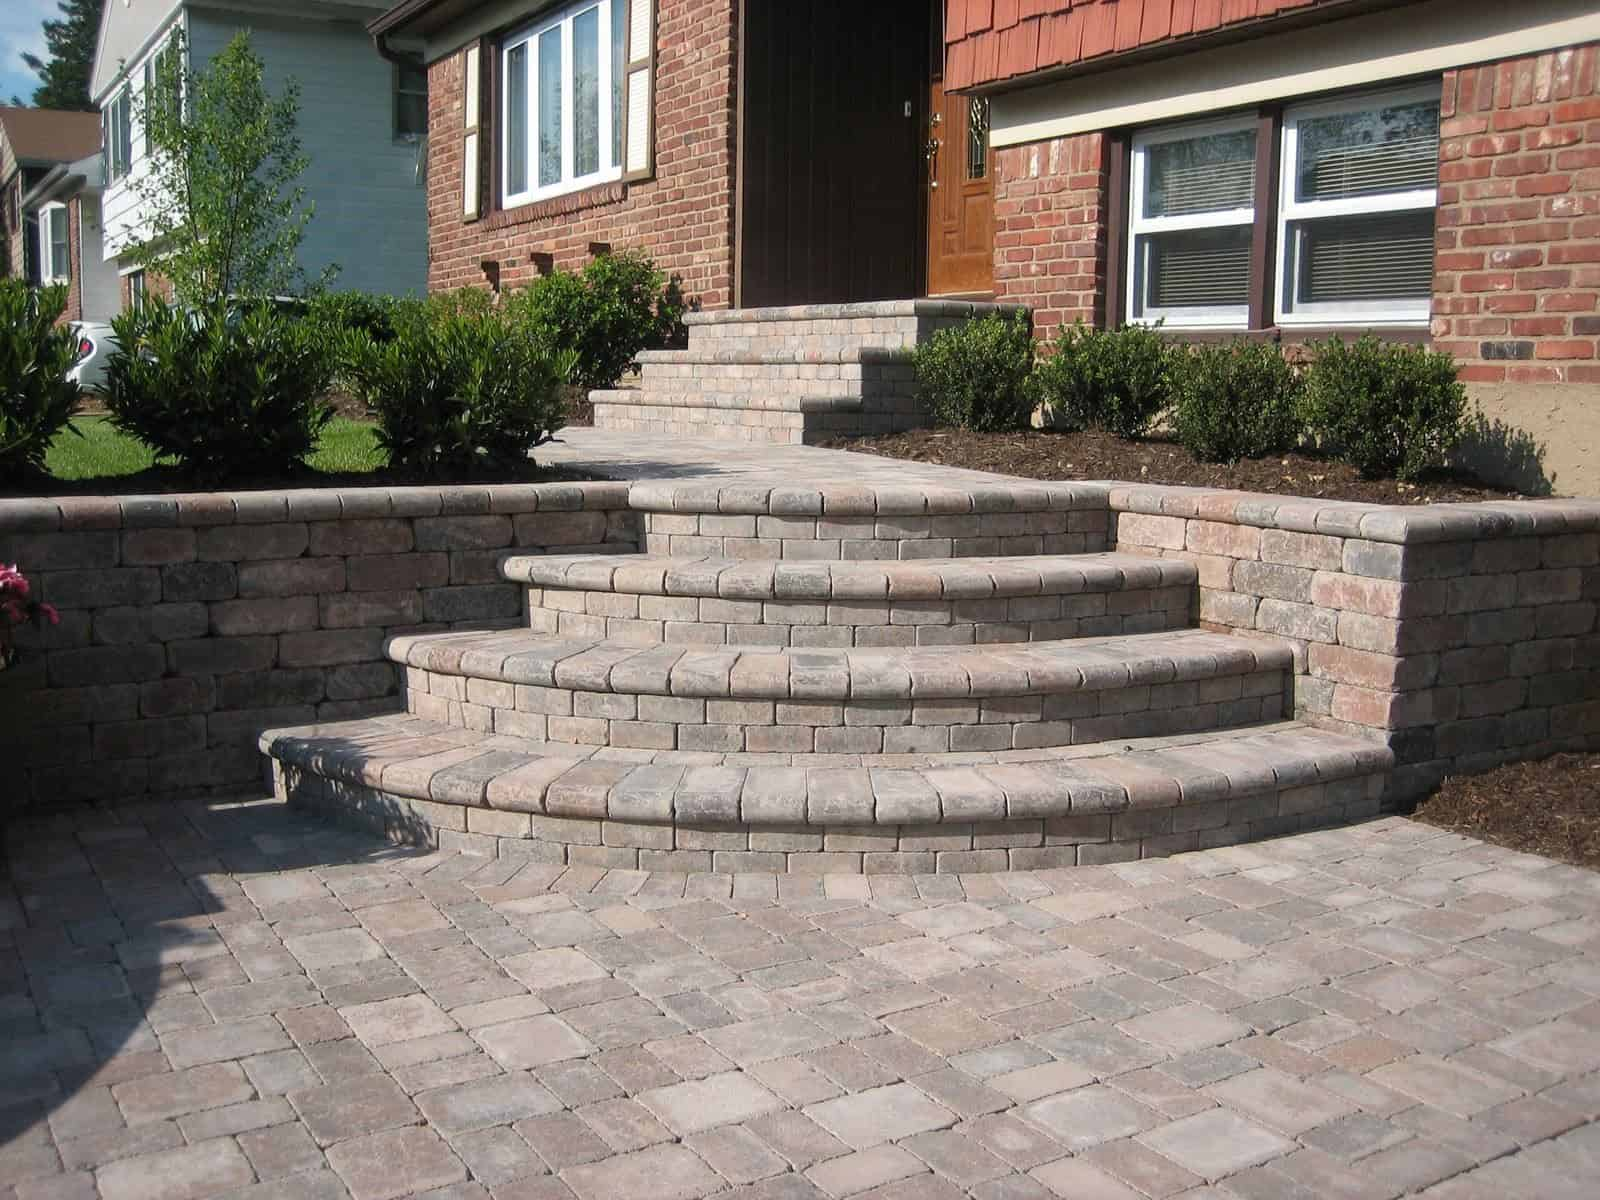 Wedding Cake steps - Unilock Fullnose - Color - Terra Cota - Retaining Wall - Unilock Dimesional Tumbled Wall System - Color - Terra Cota - Walkway Unilock Brussels Block Tumbled Paver - Color - Terra Cota